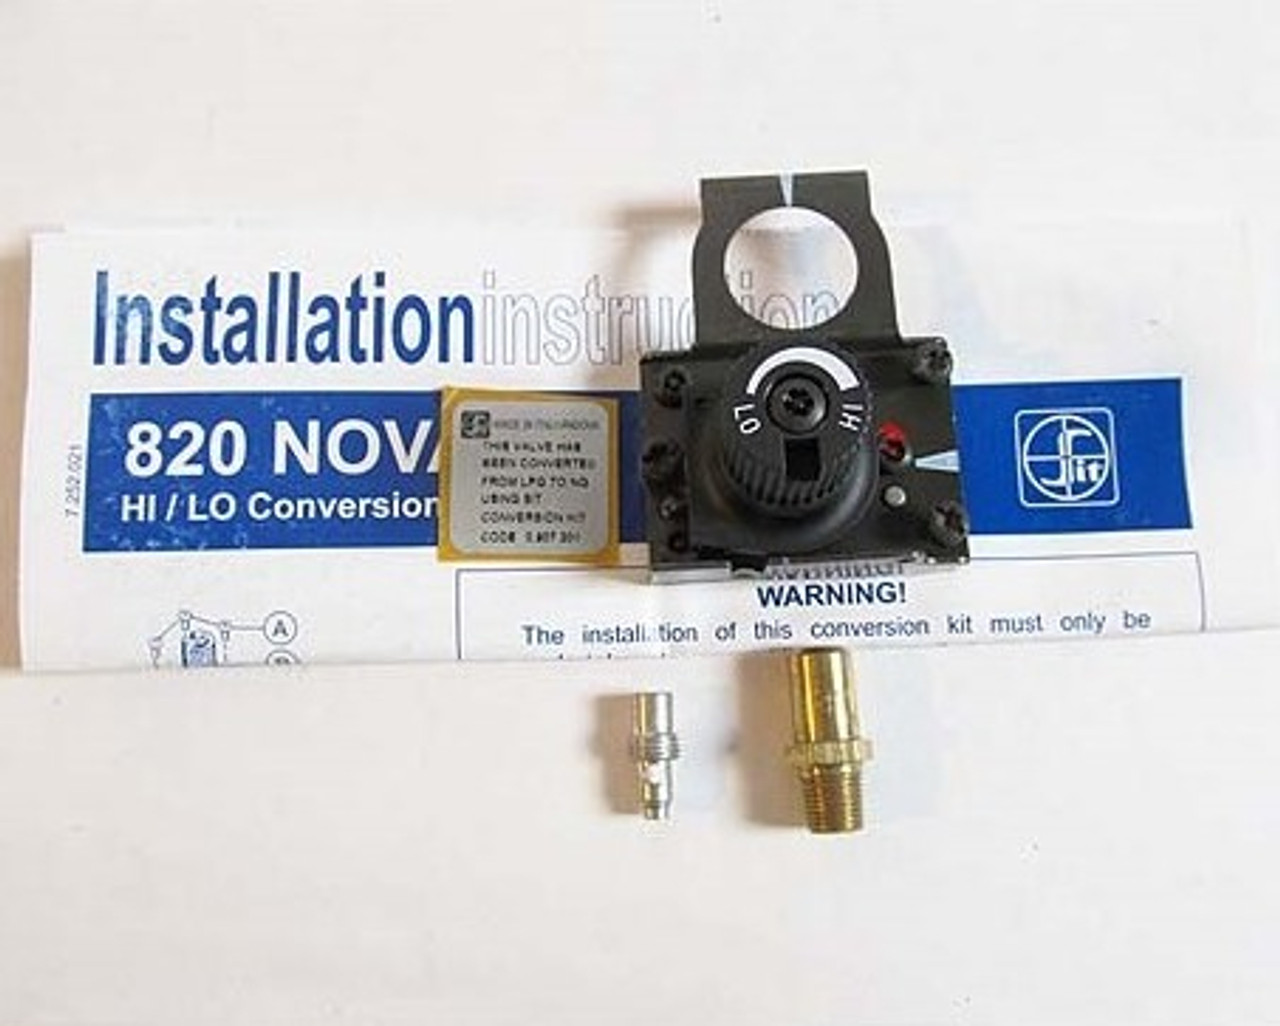 Lopi 225-10304 LP to NG Conversion Kit